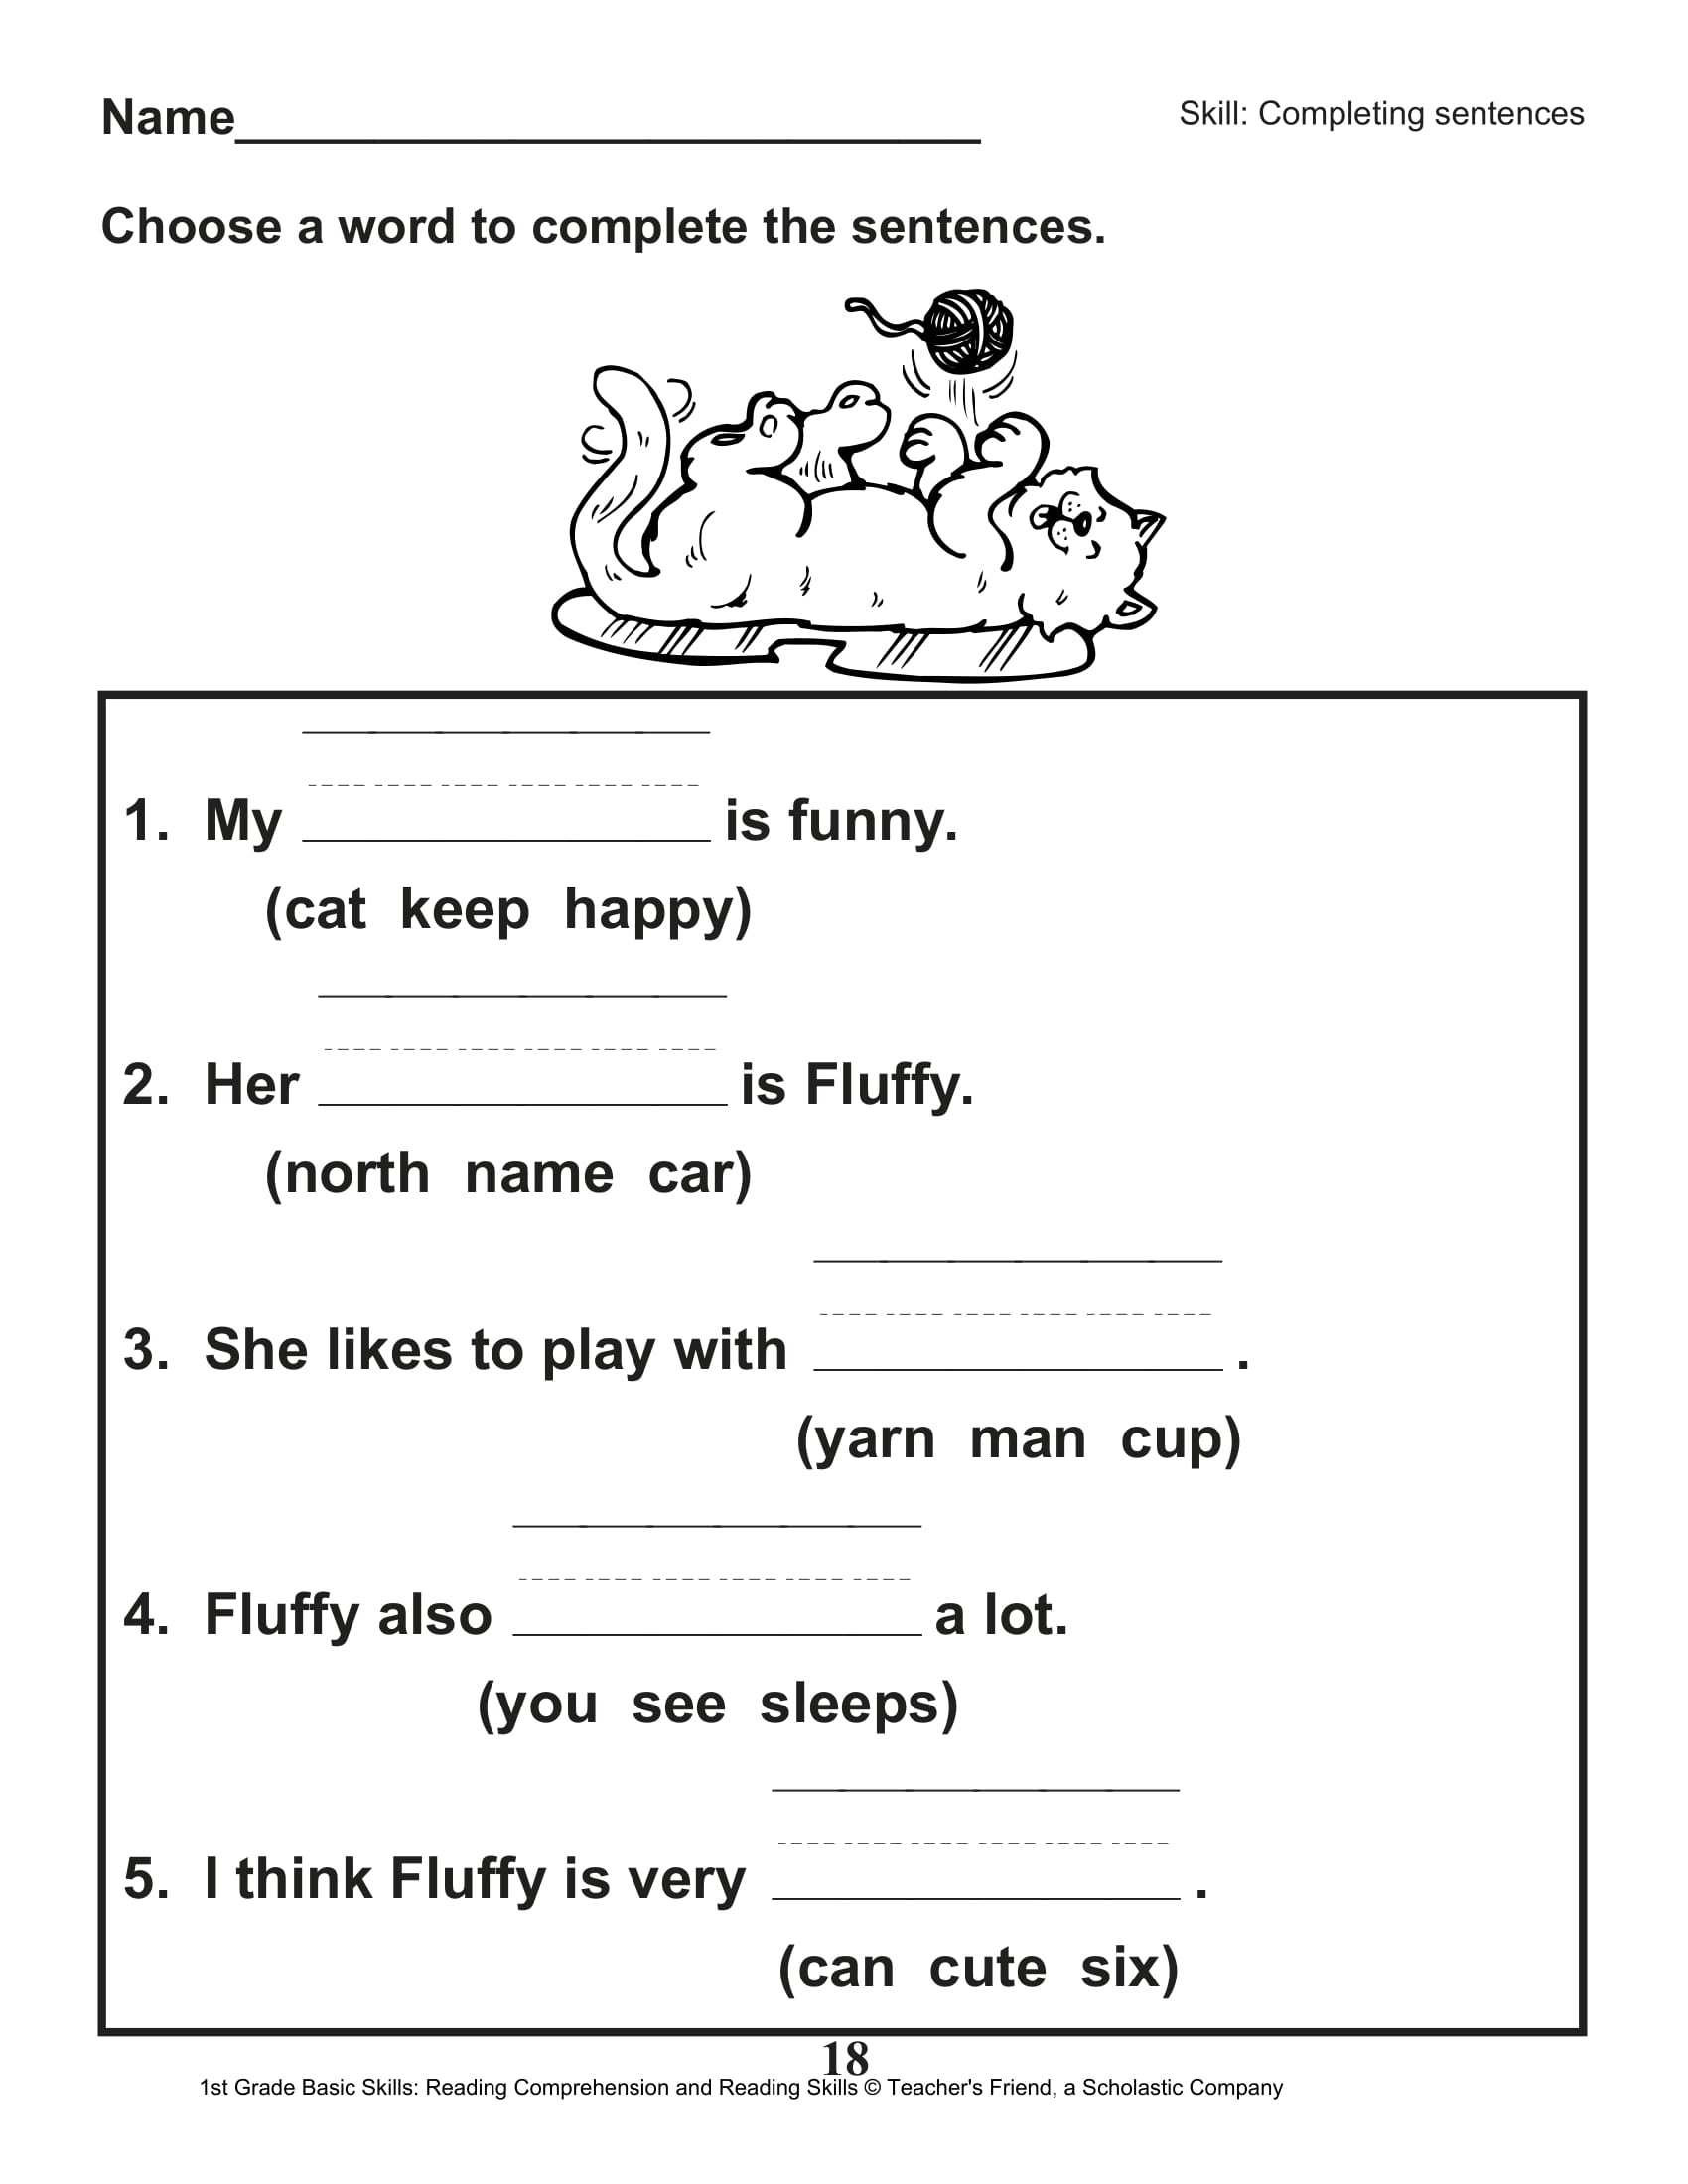 2nd Grade Reading Worksheets Printable Math Worksheet 64 1st Grade Reading Skills Image Ideas 2nd